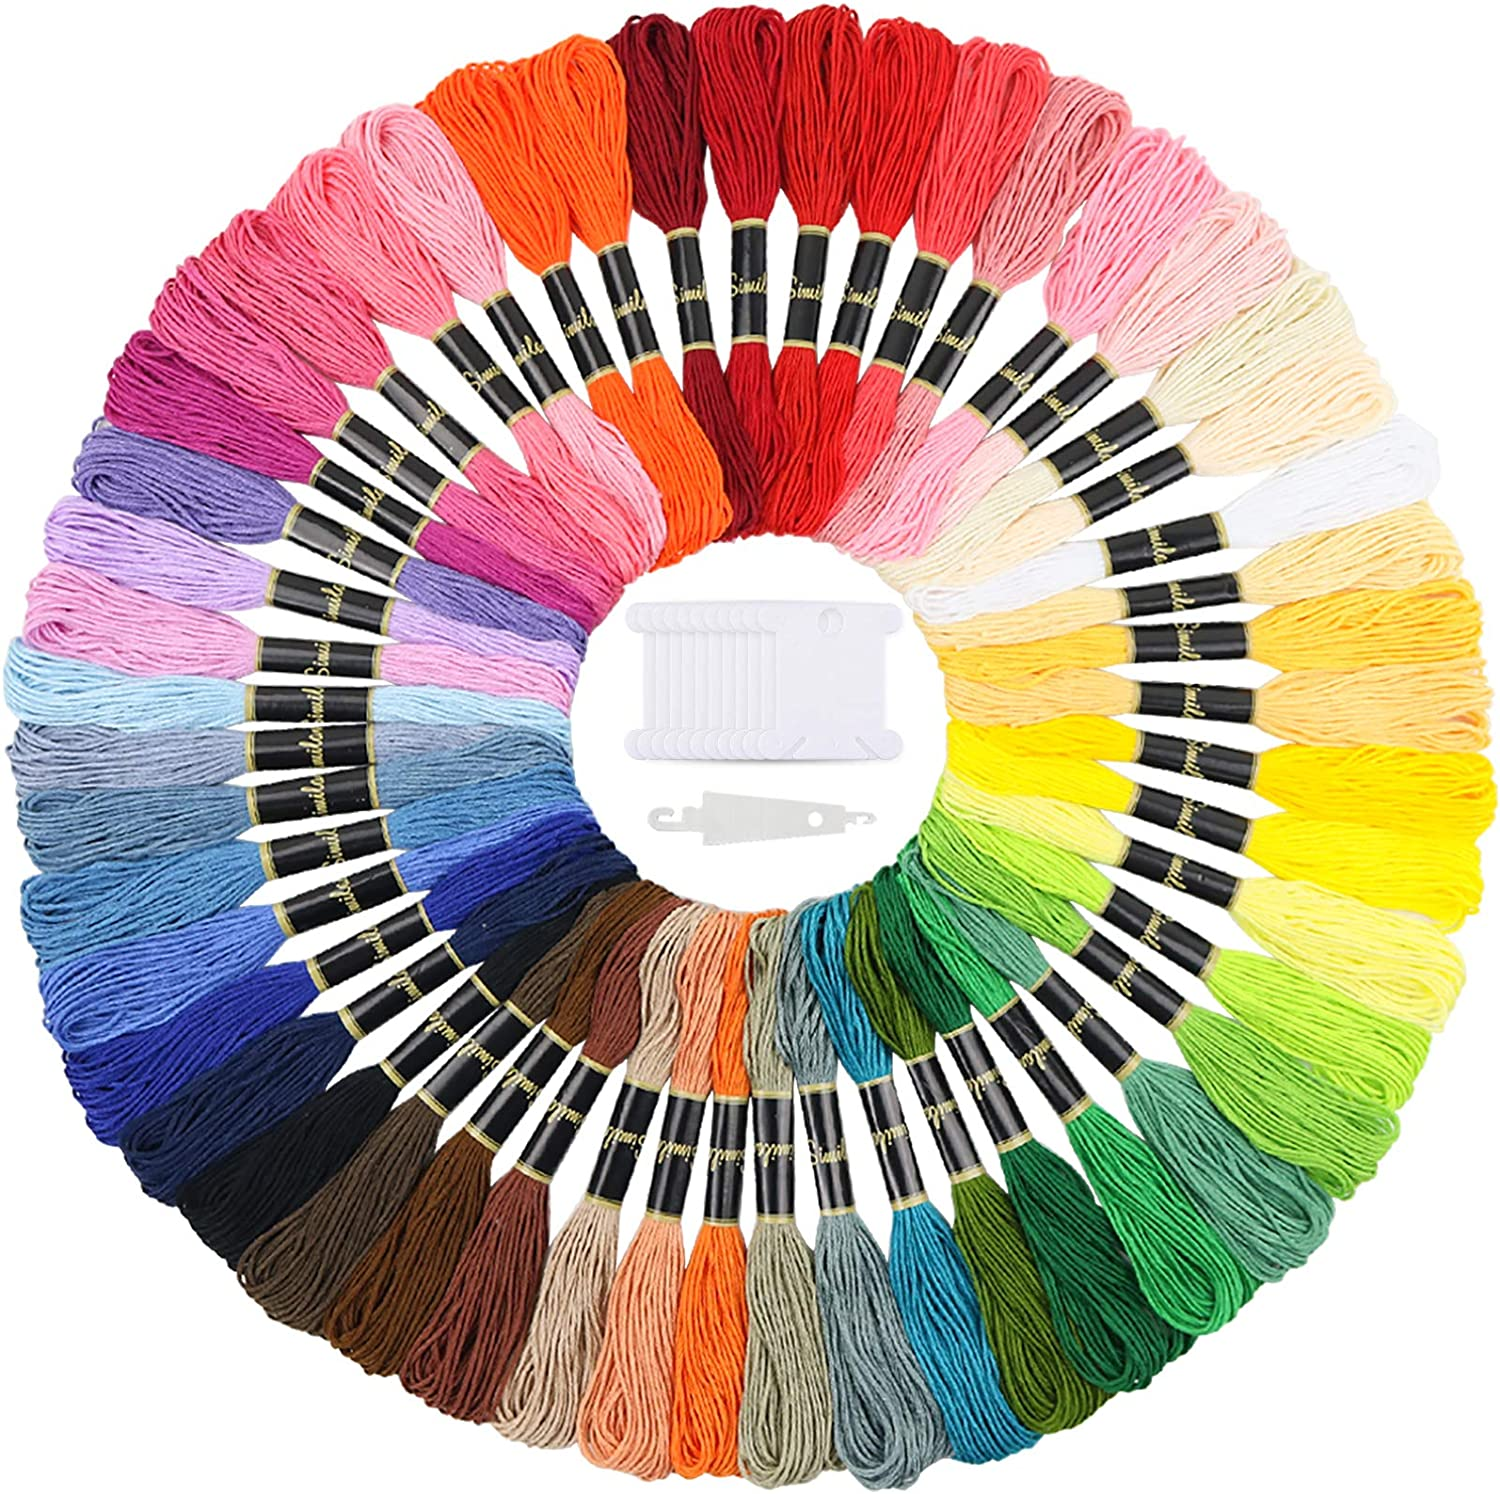 Cross Stitch Floss Embroidery Thread Embroidery Floss Rainbow Color 50 Skeins Per Pack for Friendship Bracelet String